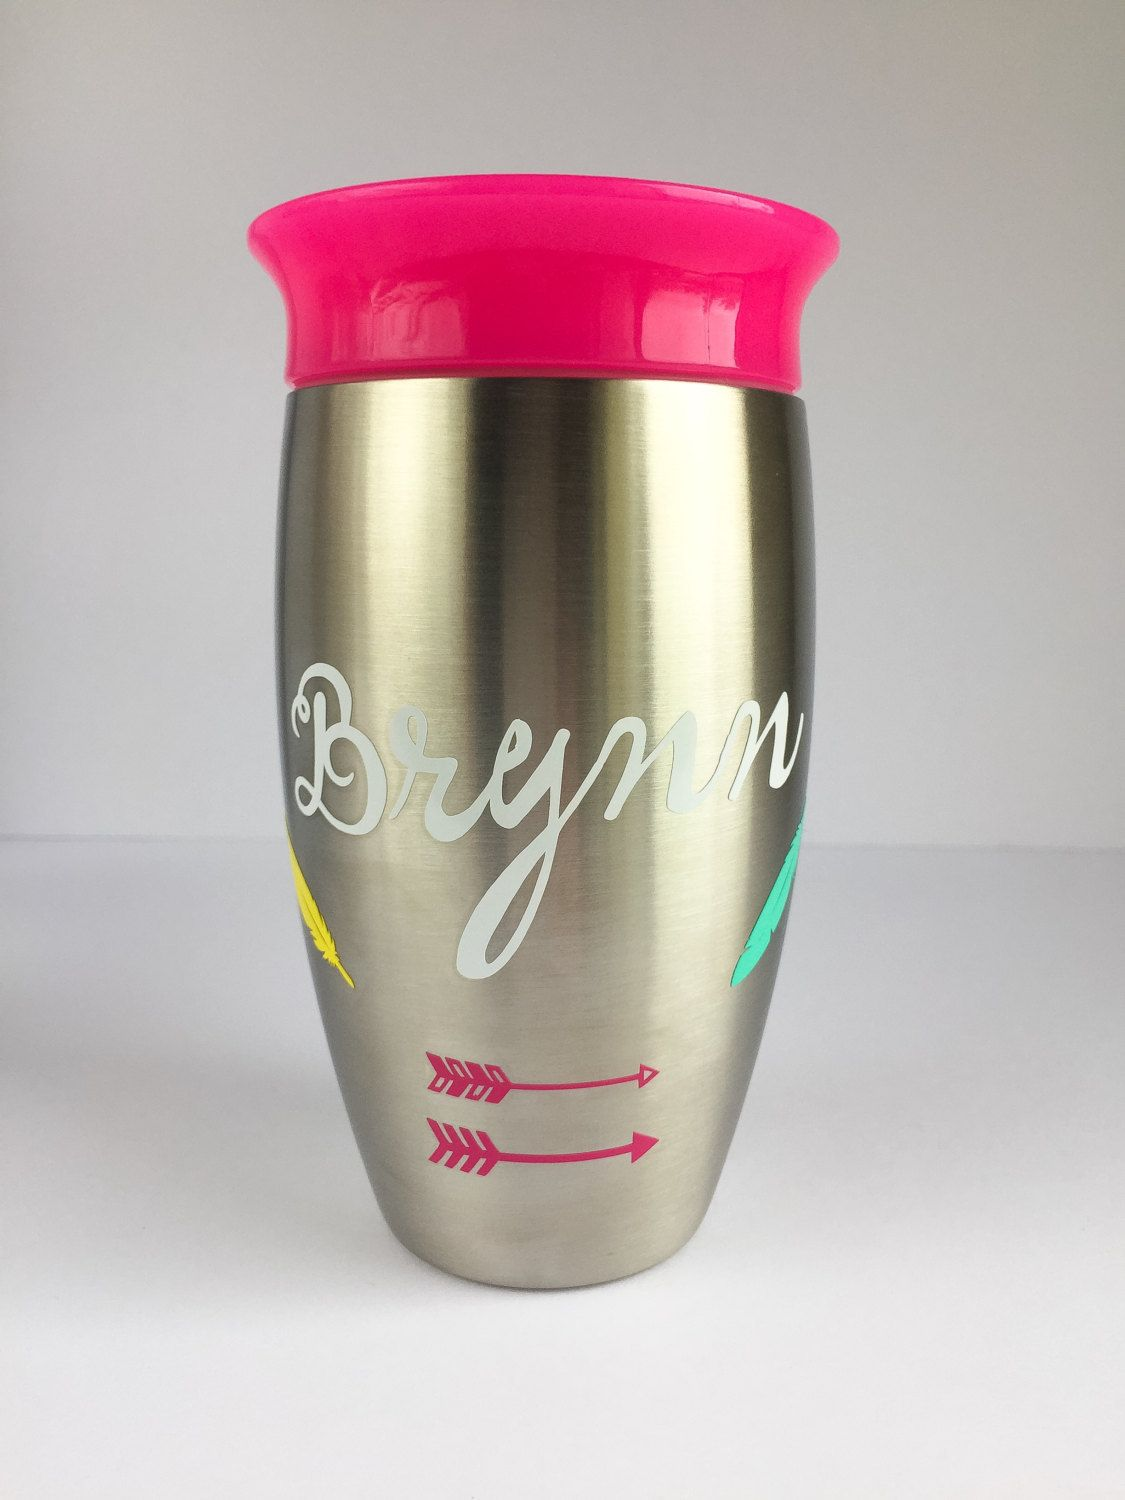 501f053e3f7 Personalized Stainless Kids Cup - Stainless Steel Cup - Miracle Stainless  Steel 360 Sippy Cup - Munchkin Stainless Sippy Cup by AddaLittleCoco on Etsy